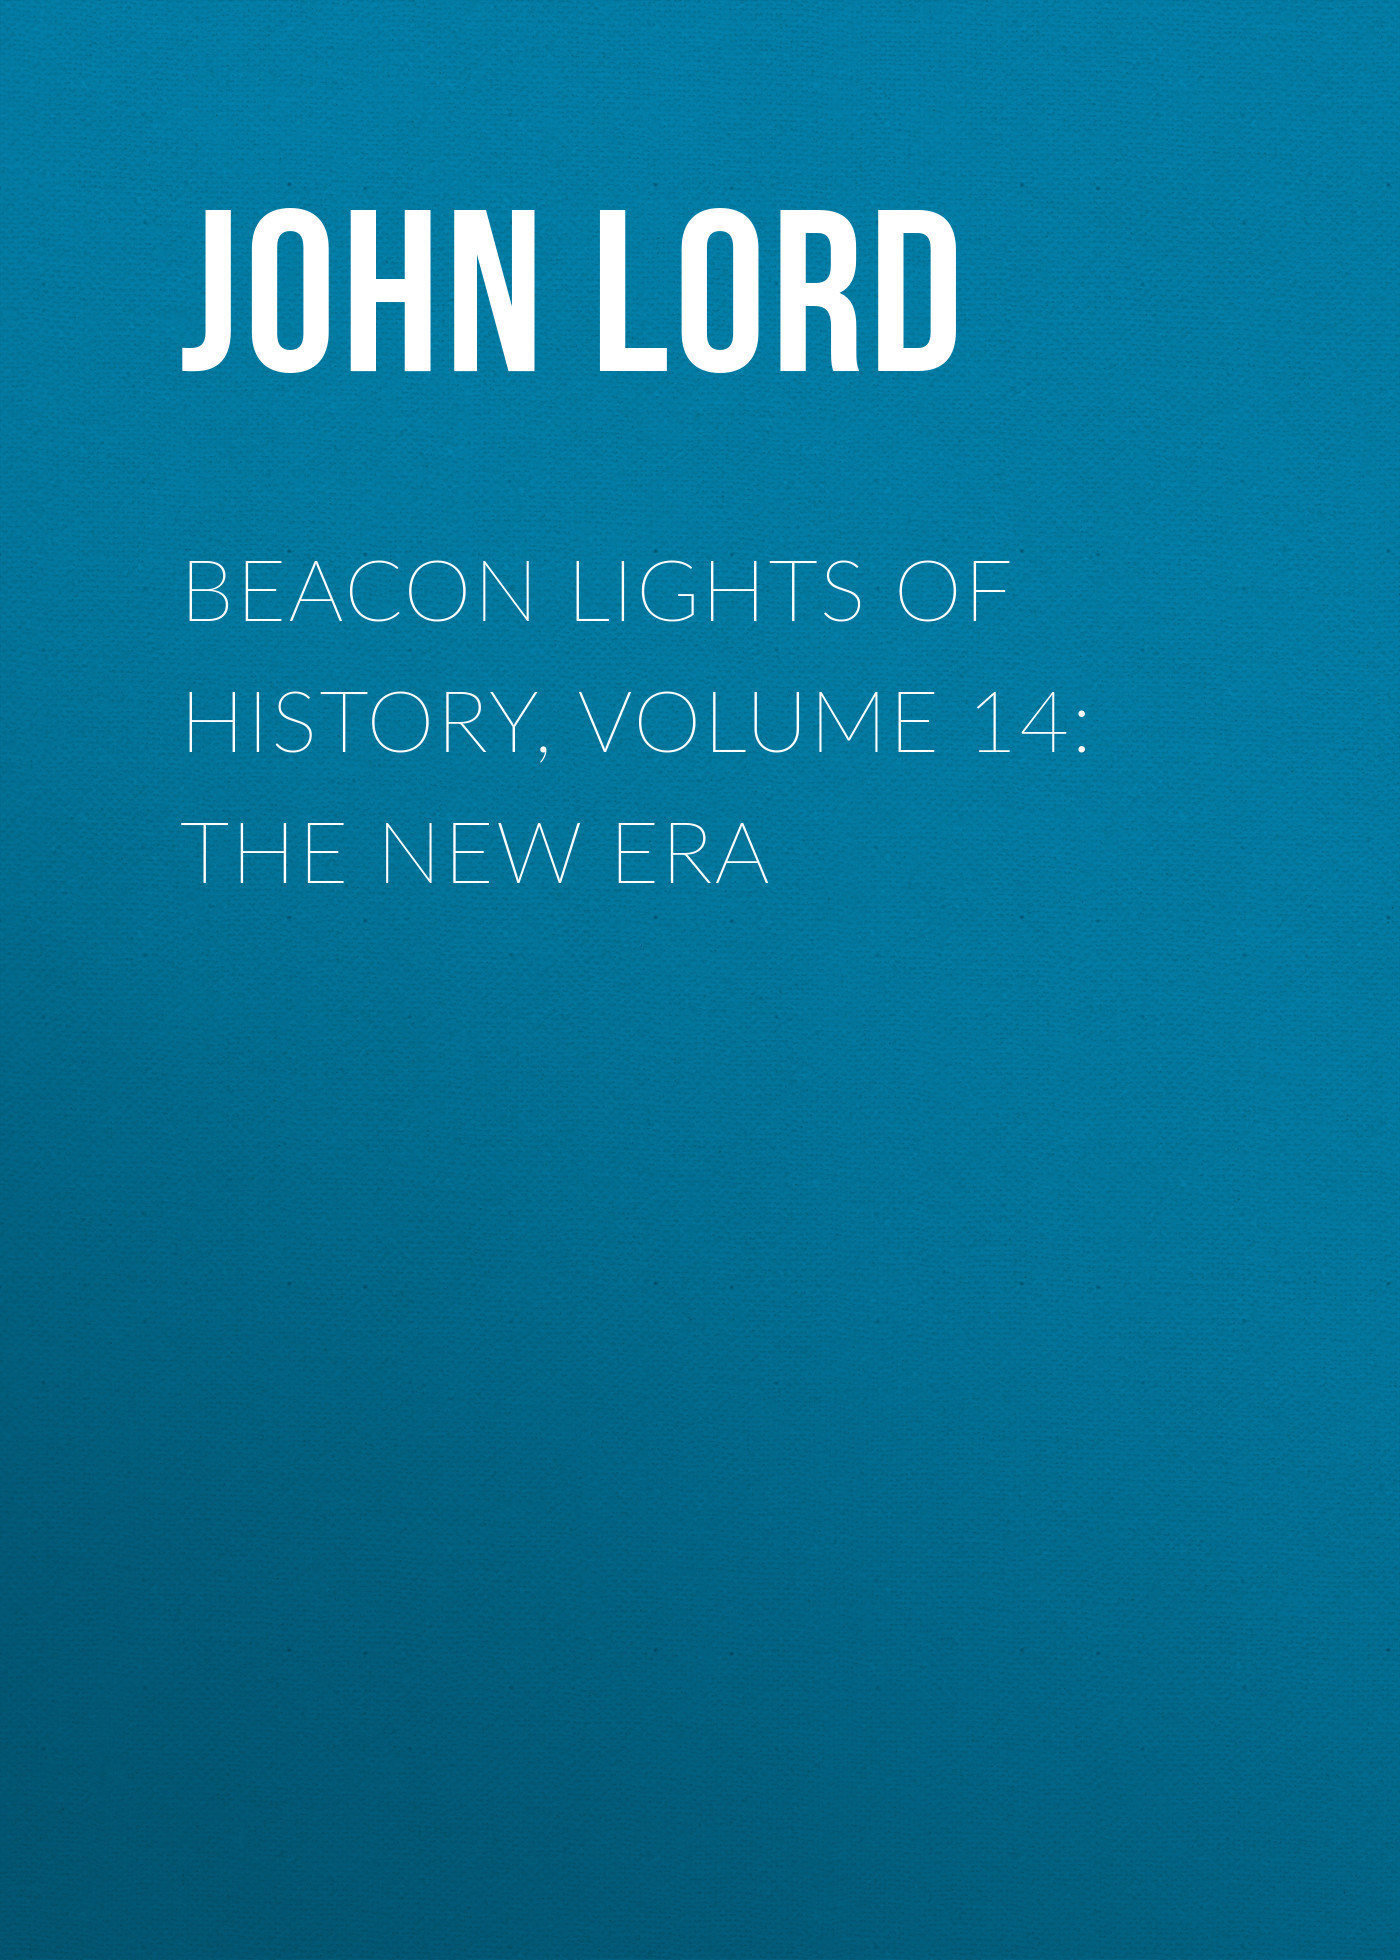 John Lord Beacon Lights of History, Volume 14: The New Era 2017 new k guss gu50 hifi 2 0 class d tpa3116 mini borne audio power amplifier amplificador 2 50 w dc12v to dc24v